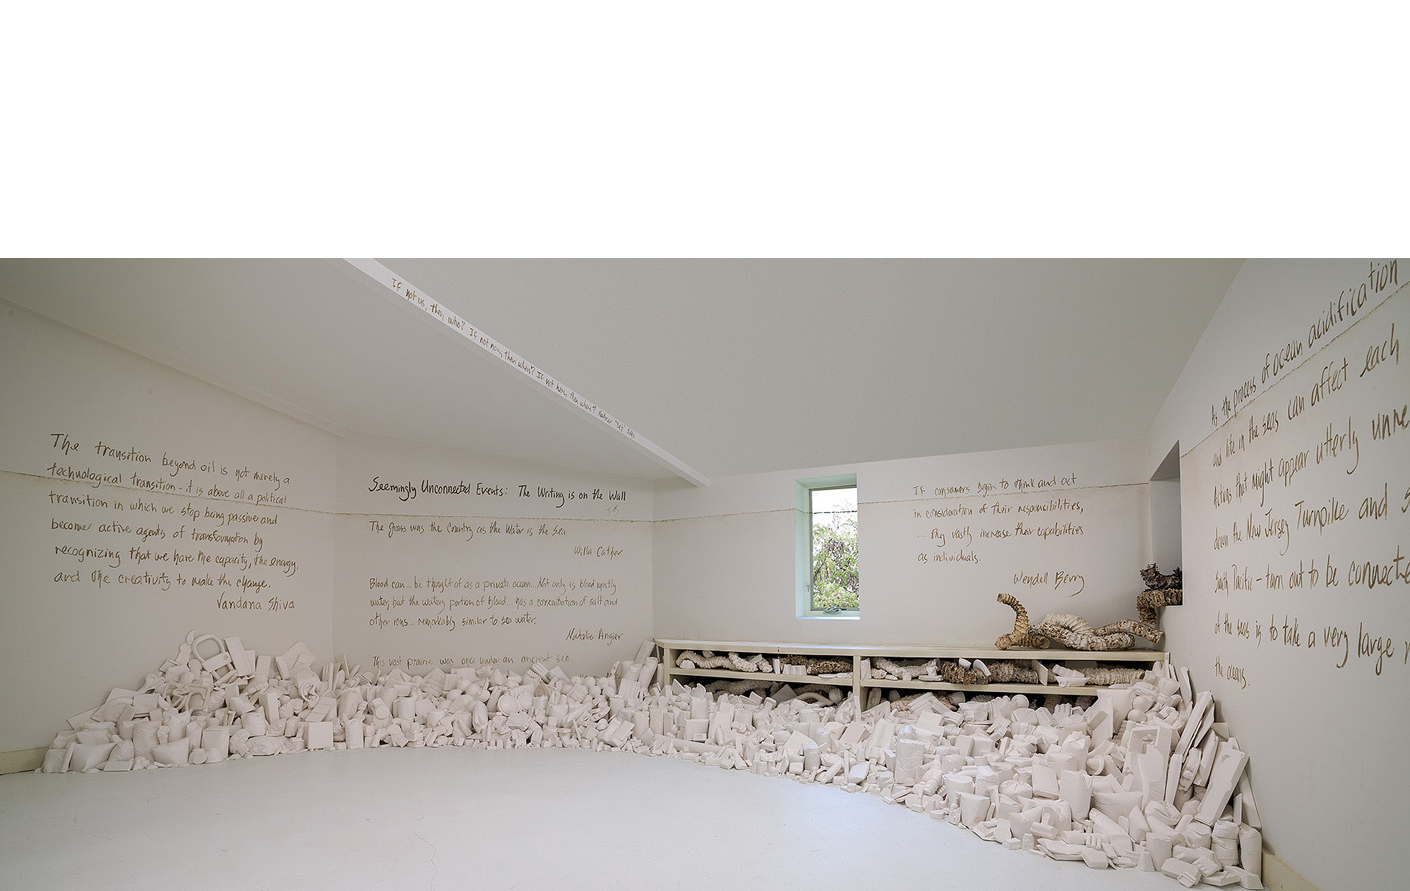 """Installation overview, plaster organic forms and consumer goods casts, """"waterline"""", wall texts drawn in Kansas mud featuring writings of Natalie Angier, Willa Cather, Wendell Berry, Stan Cox and Paul Cox, Wes Jackson, Elizabeth Kolbert, Karen McCoy, Naderev """"Yeb"""" Saño and Vandana Shiva, 15 x 14'5"""""""